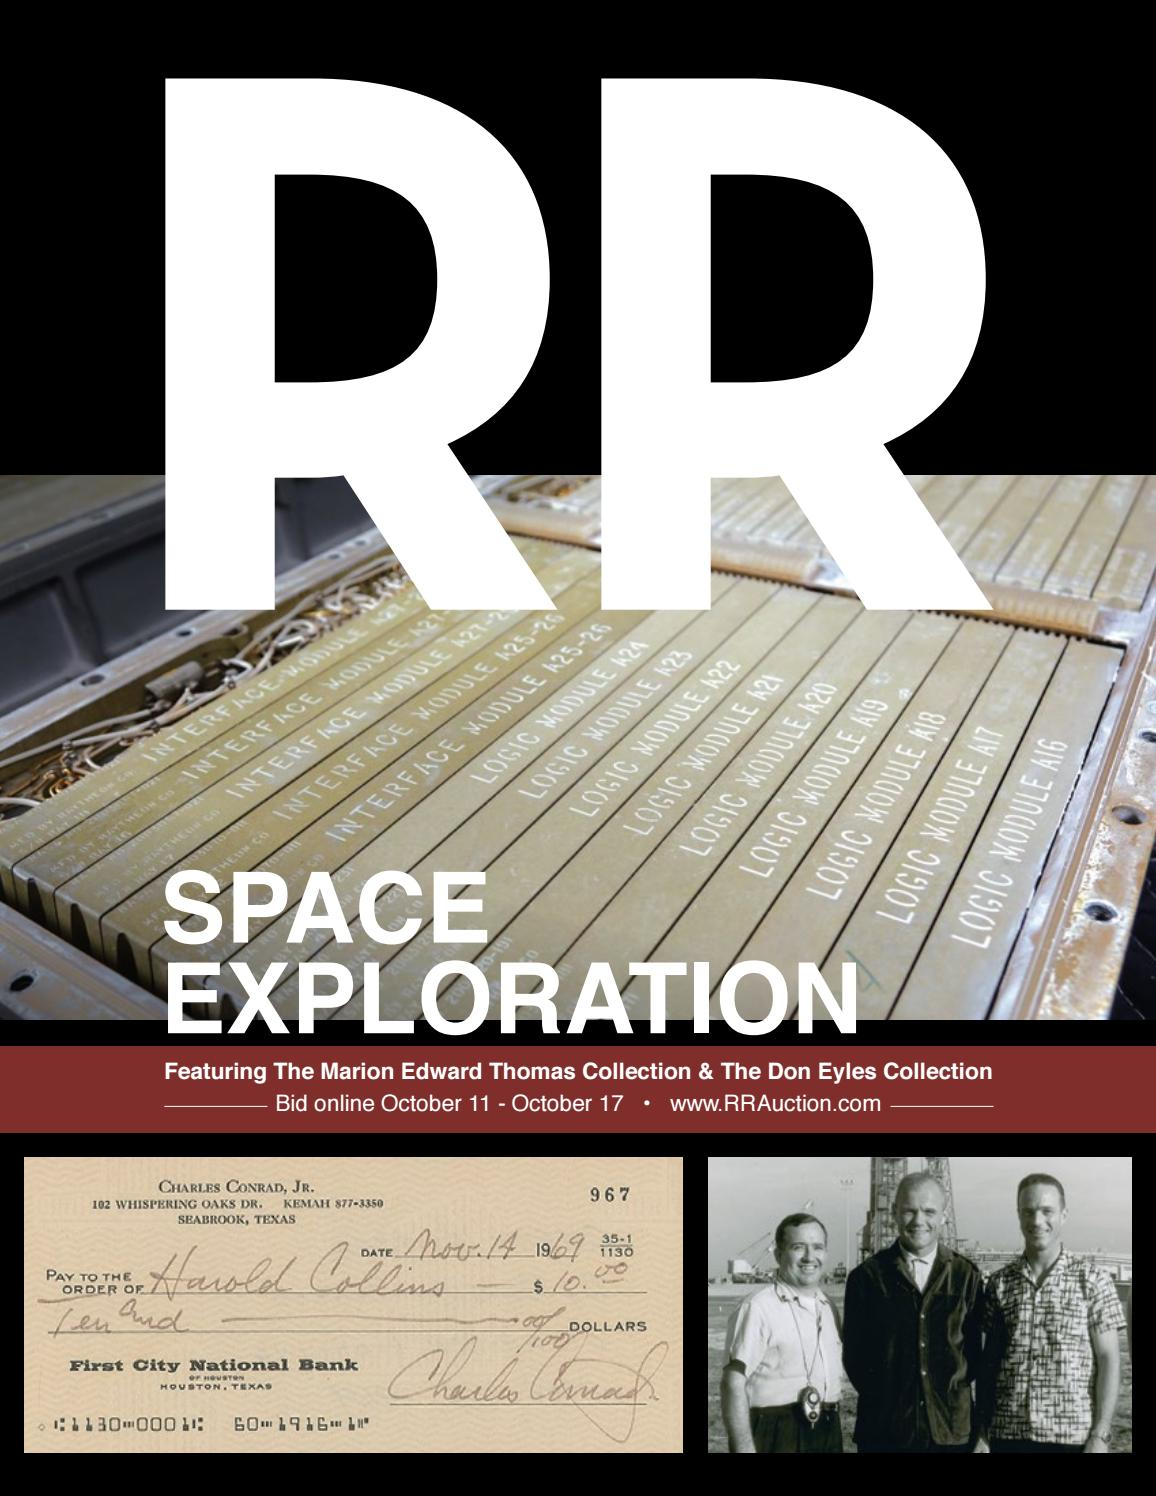 Rr Auction Space Exploration By Rr Auction Issuu